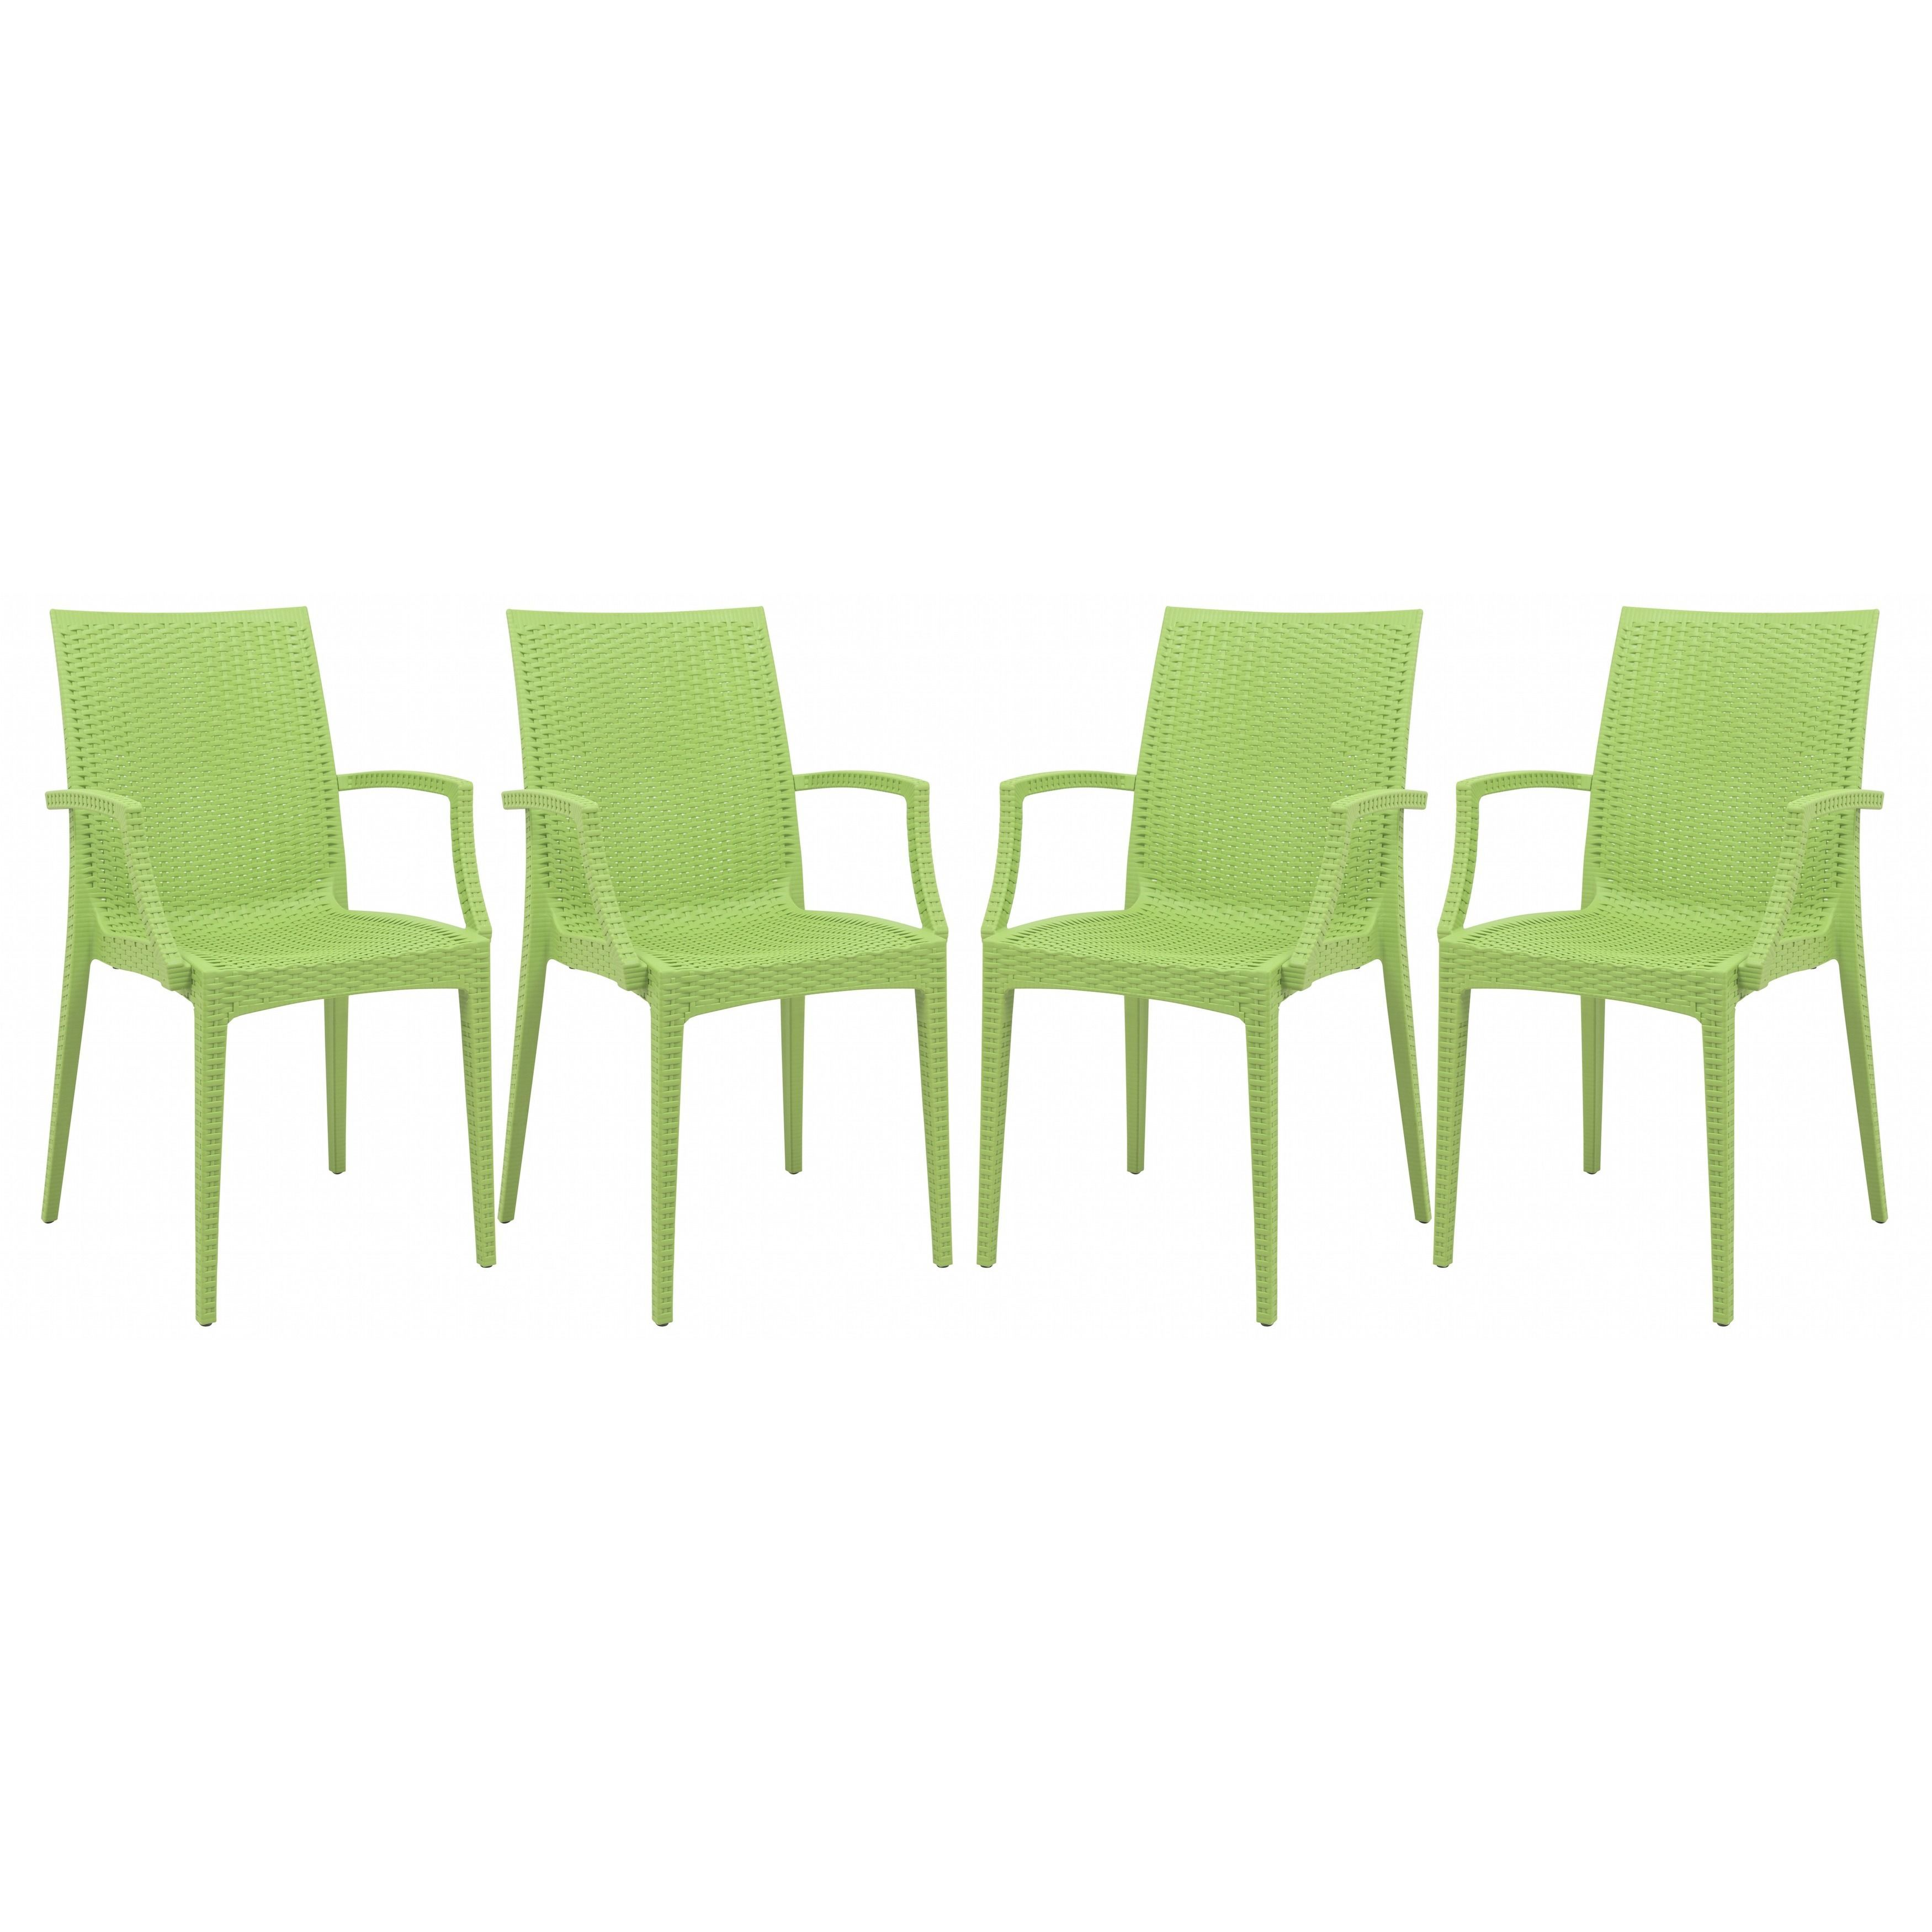 Wondrous Built Of Polypropylene This Indoor Outdoor Chair From Gmtry Best Dining Table And Chair Ideas Images Gmtryco